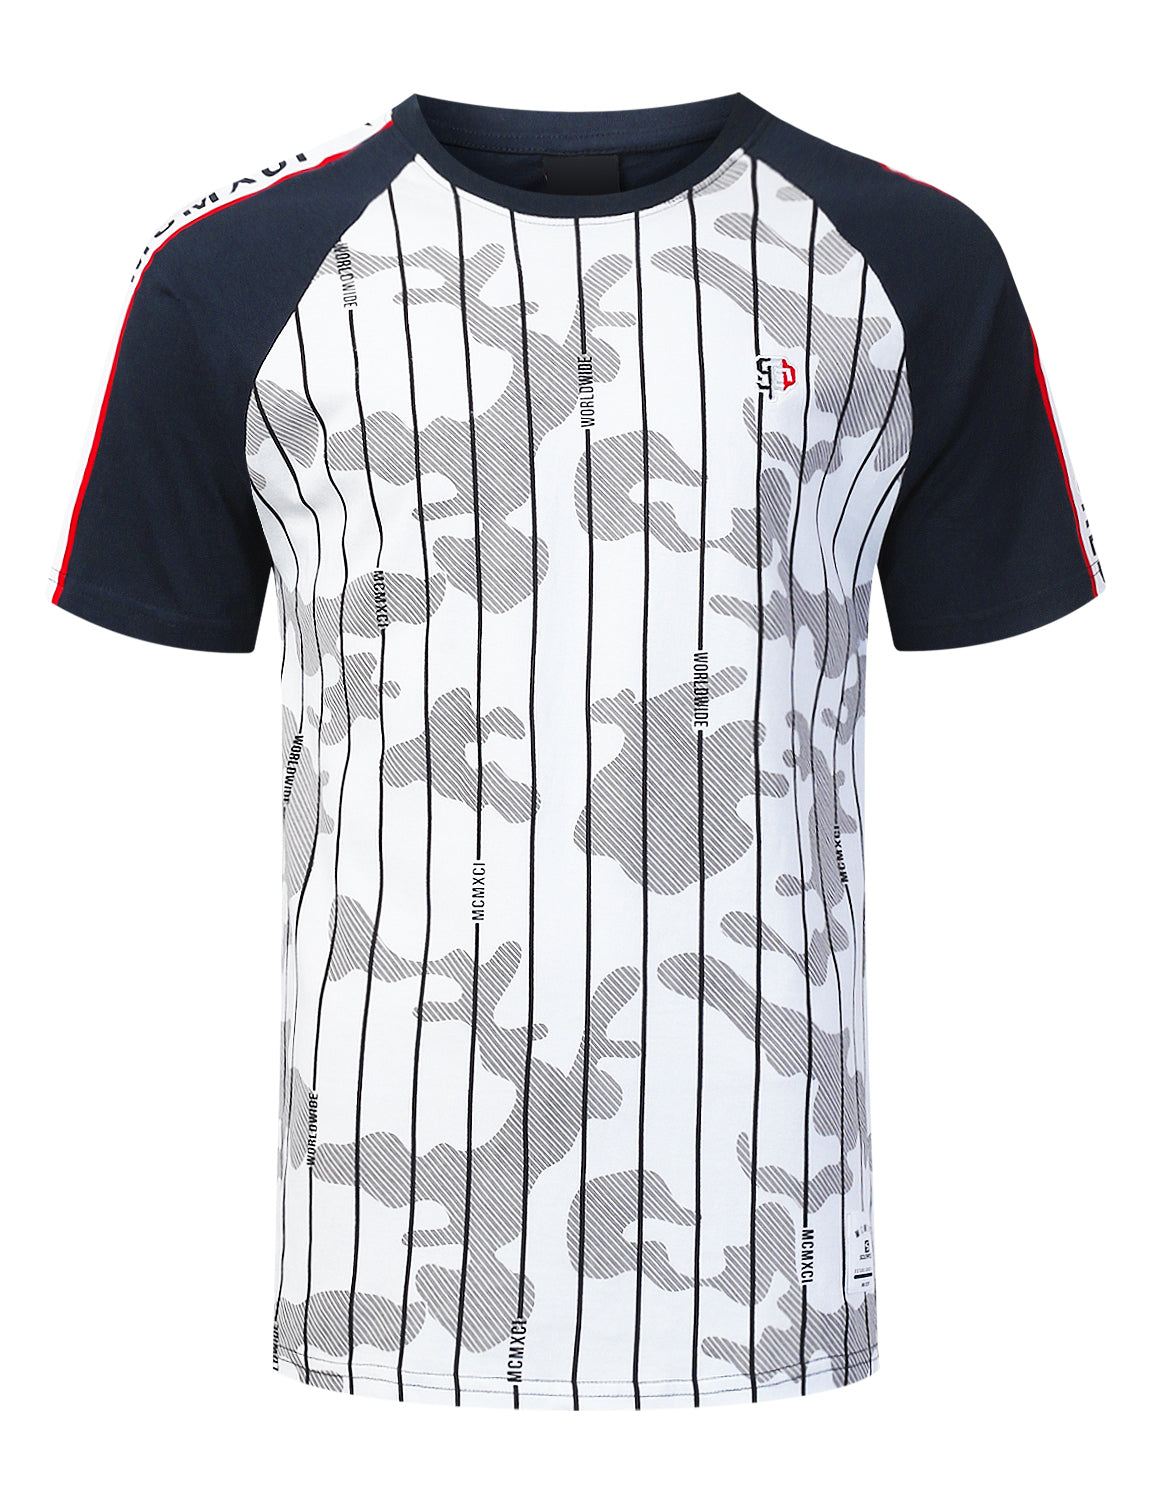 WHITE Pinstripe Camo Graphic Raglan T-shirt - URBANCREWS